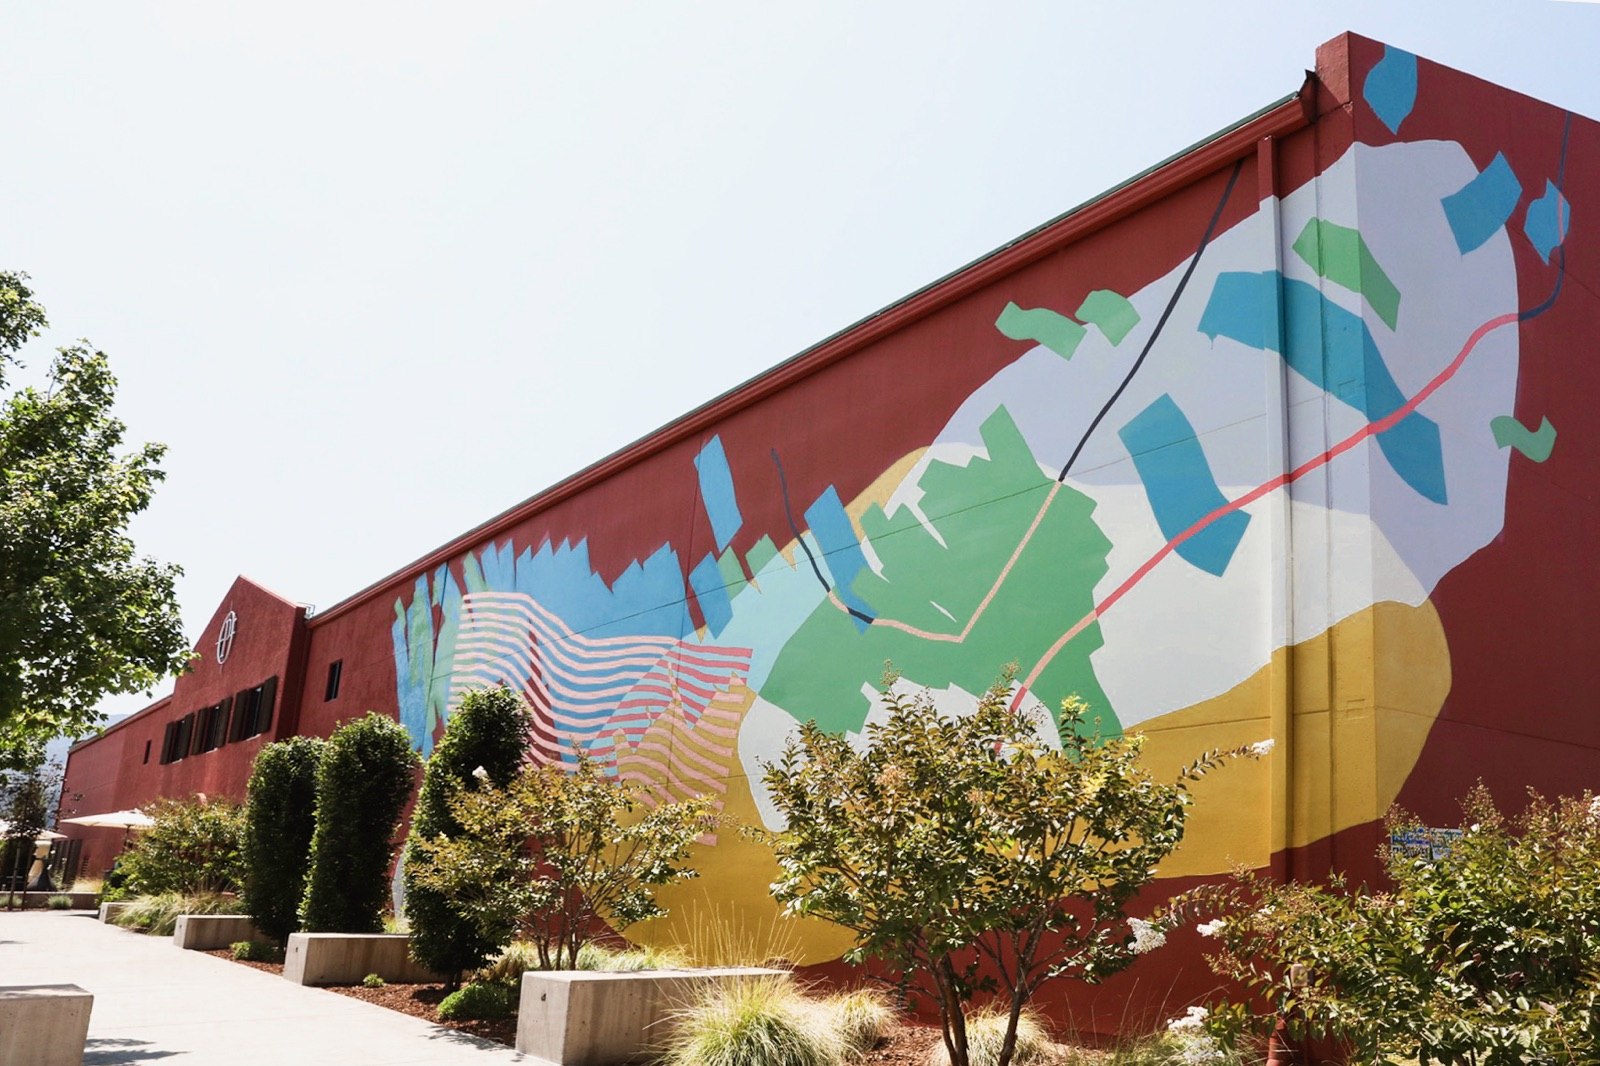 Heather Day's mural at Provenance Vineyards in Napa Valley